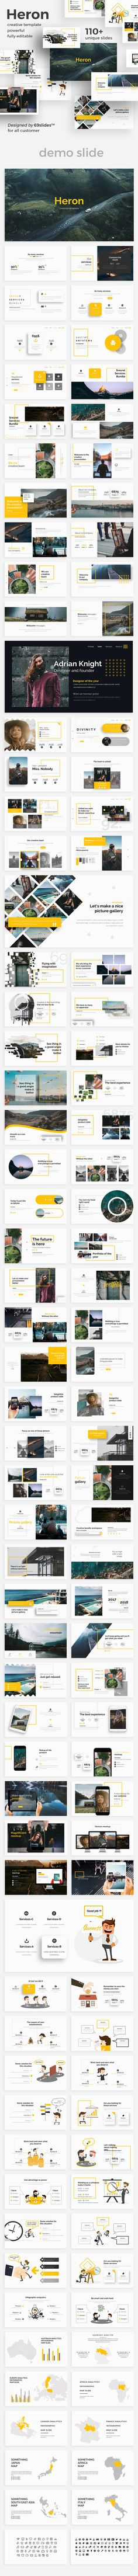 Heron Creative Google Slide Template #annual report #university • Download ➝ https://graphicriver.net/item/heron-creative-google-slide-template/21249366?ref=pxcr